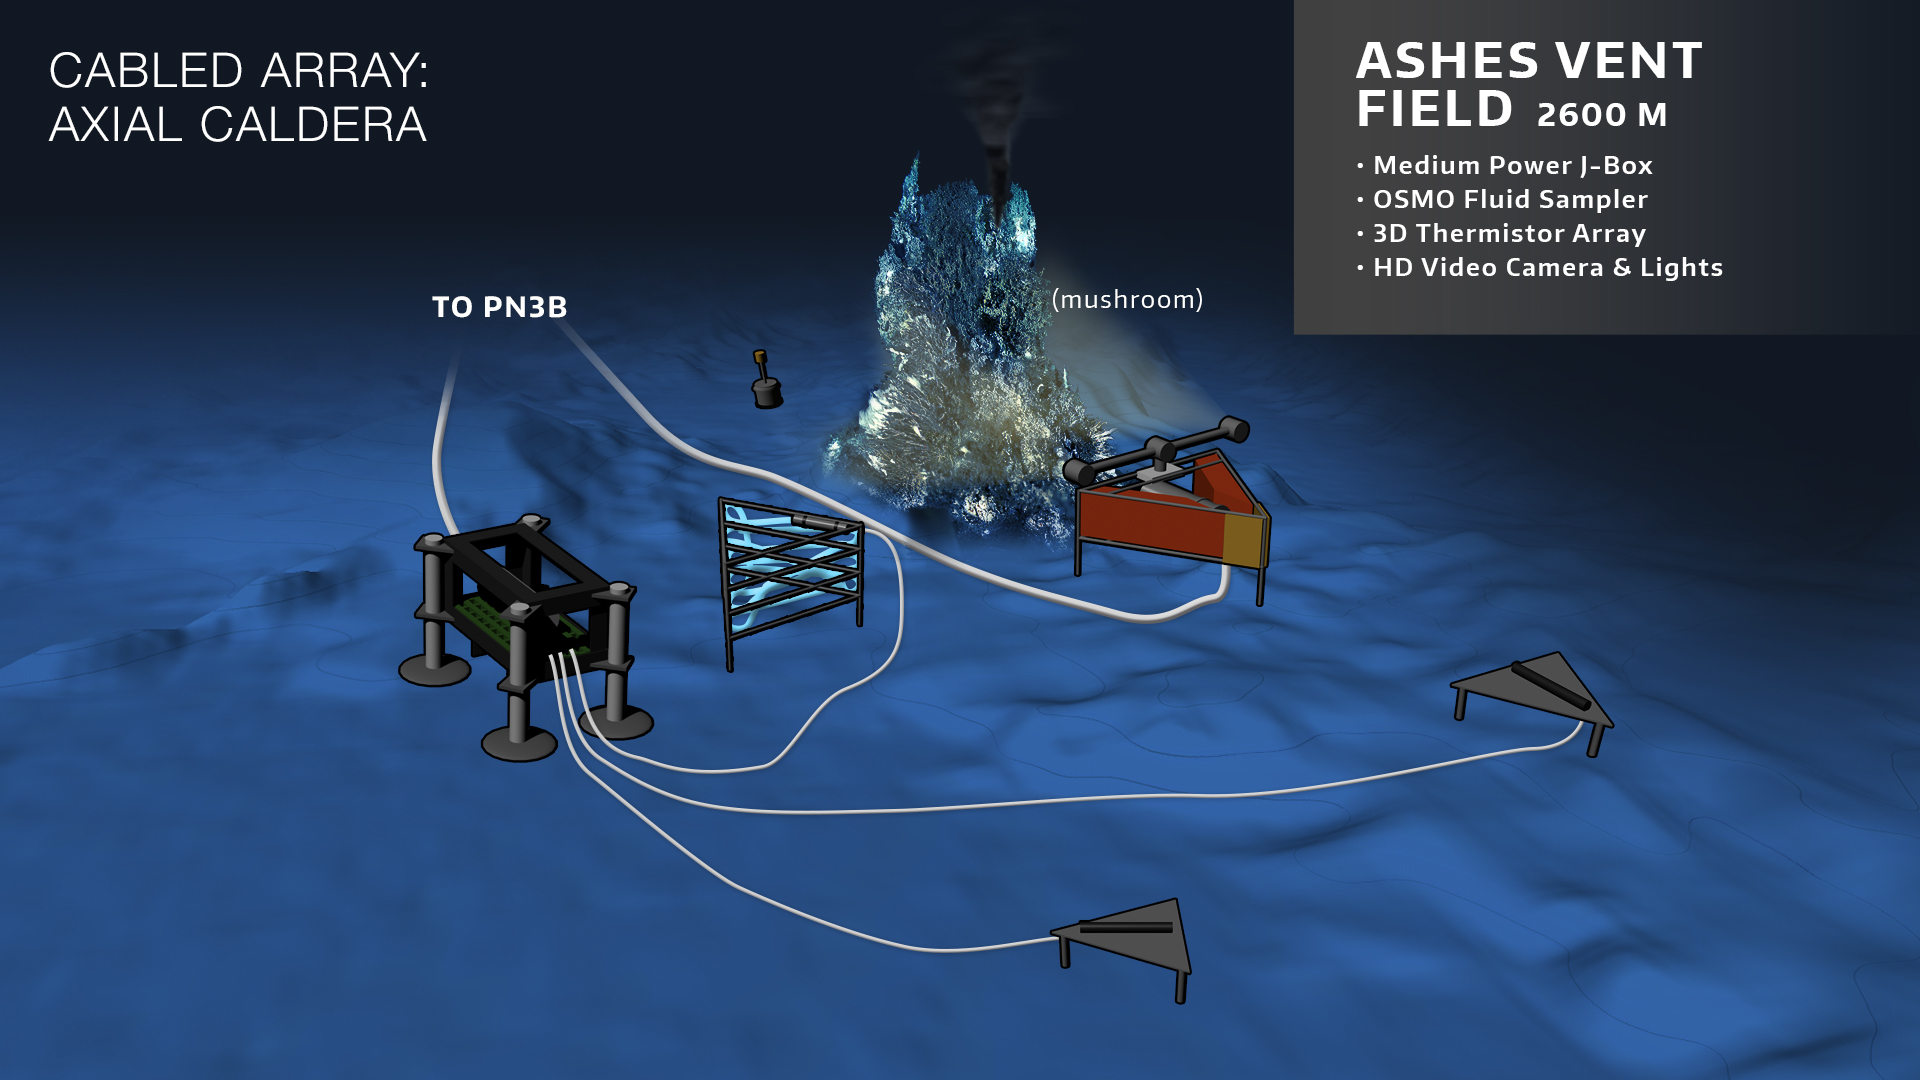 ASHES Vent Field Caption